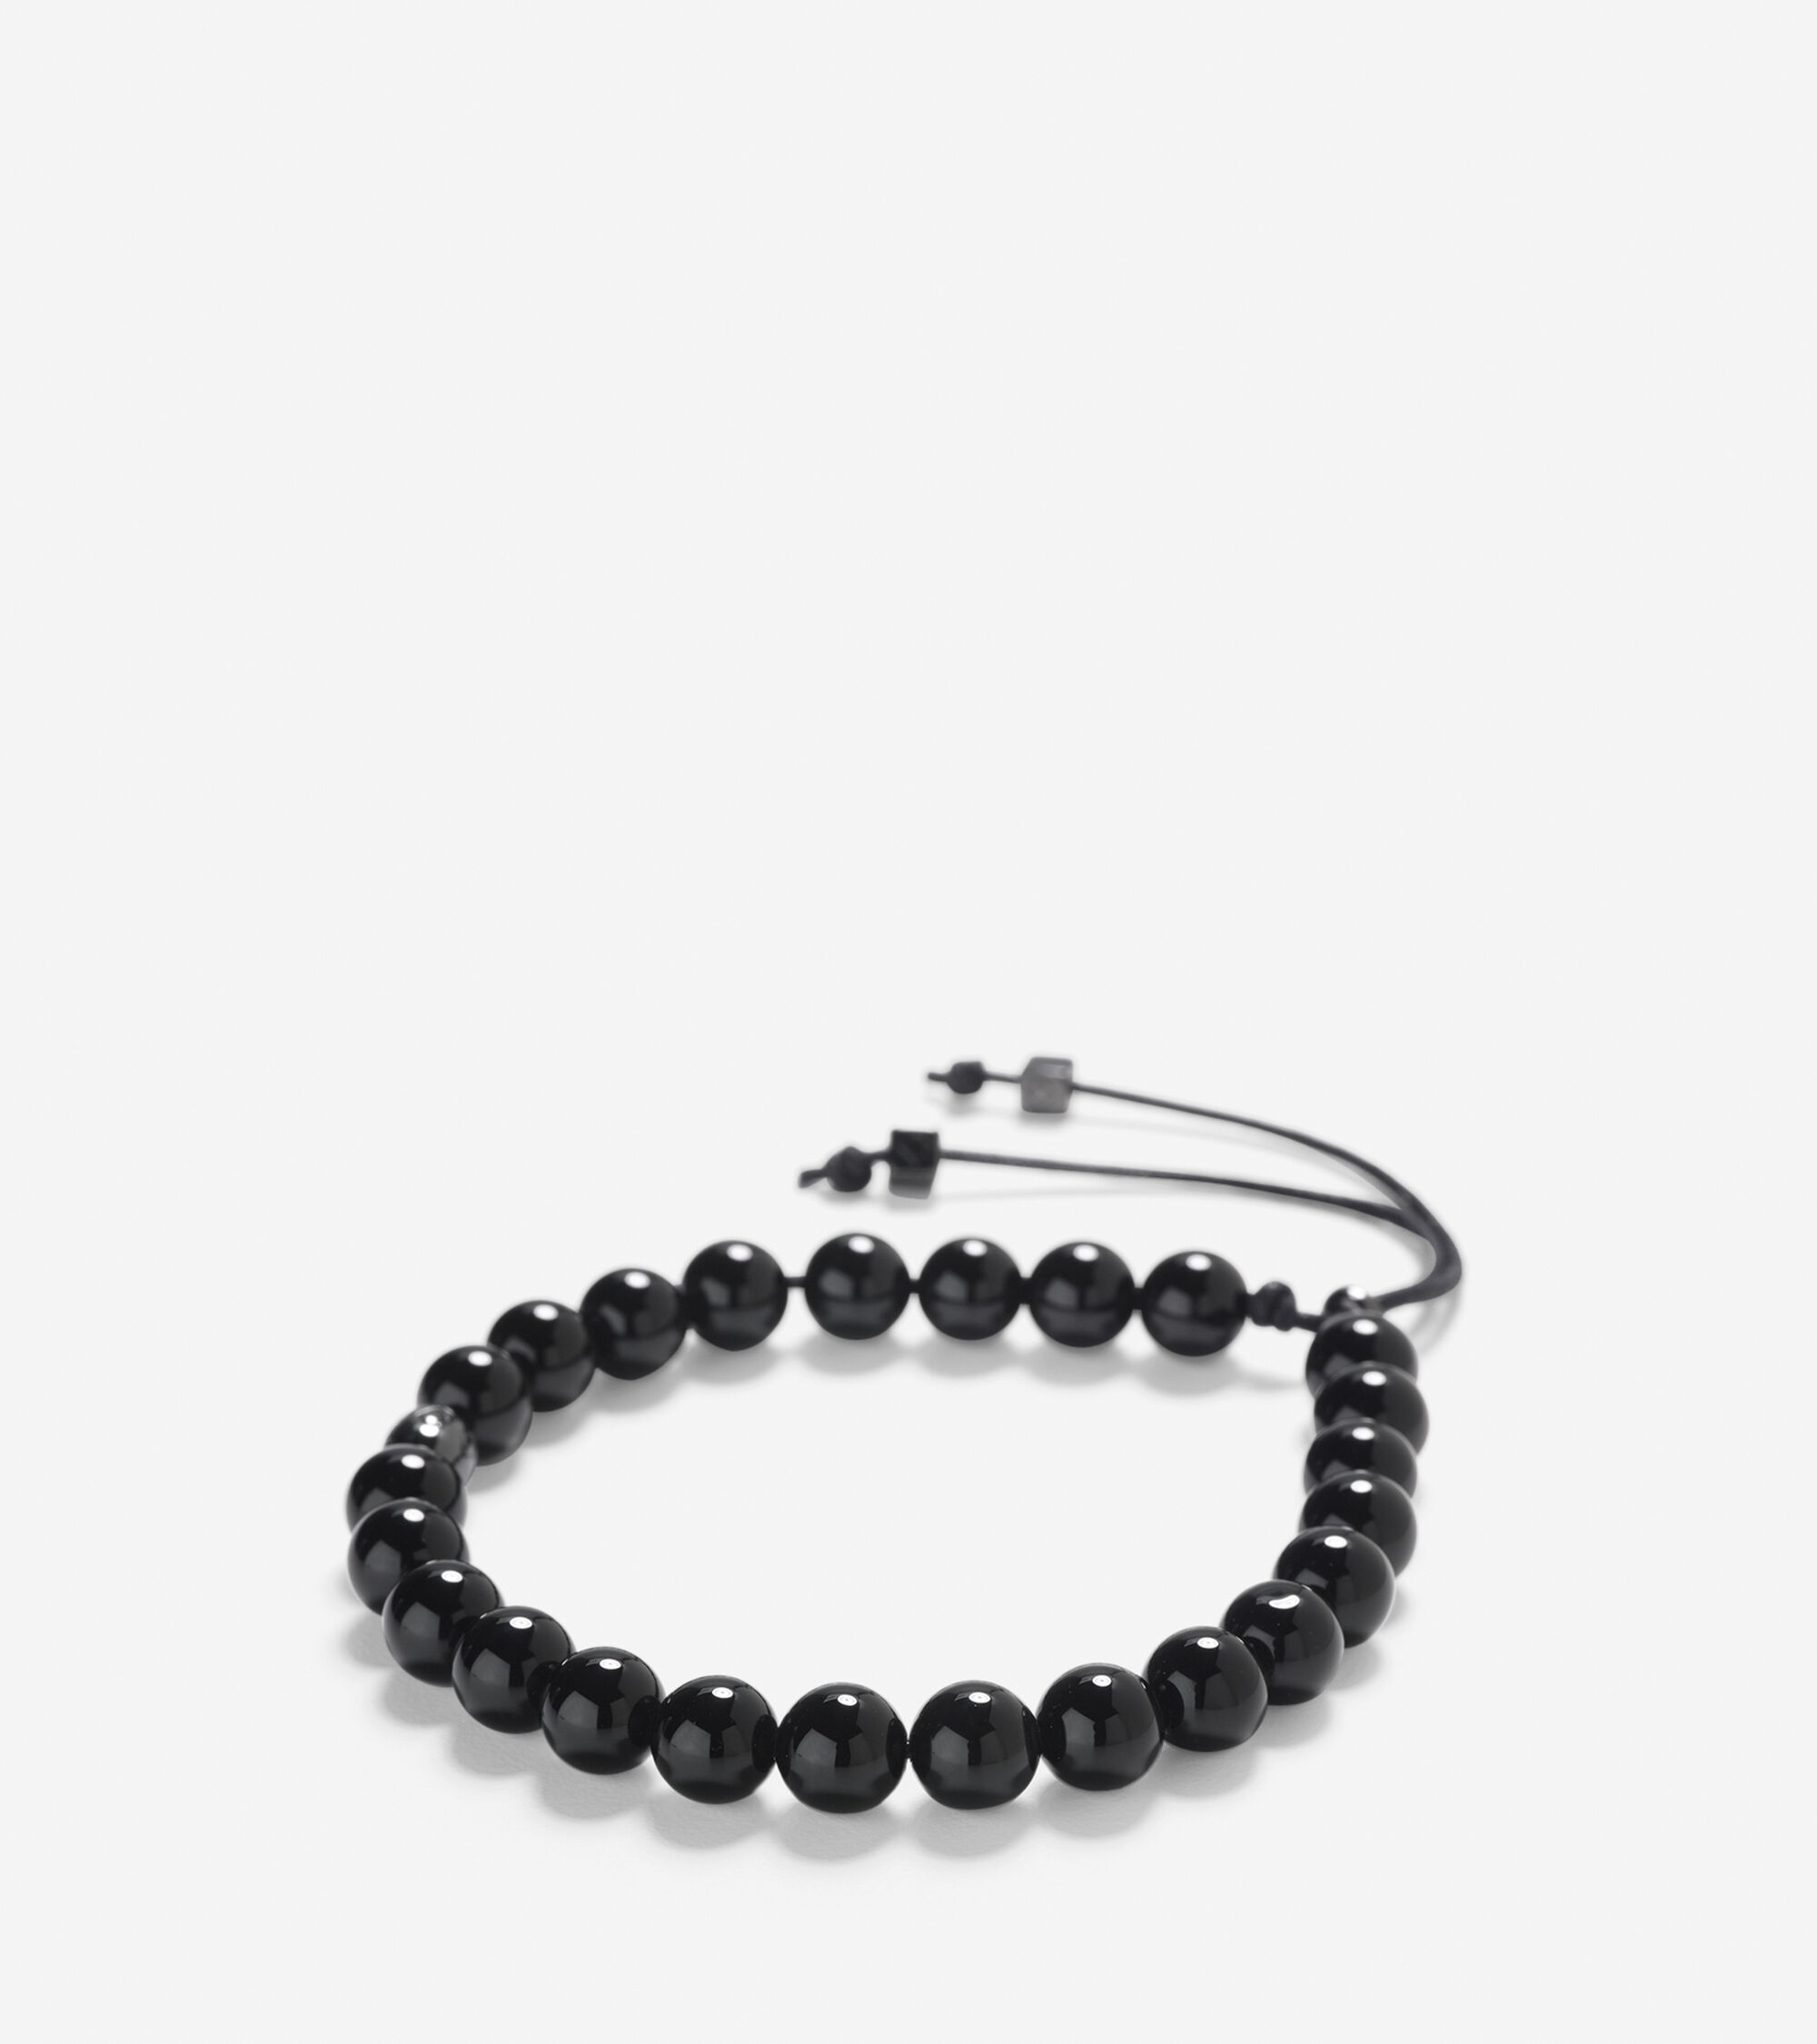 Accessories > 8mm Bead Bracelet With Cole Haan Bead Closure